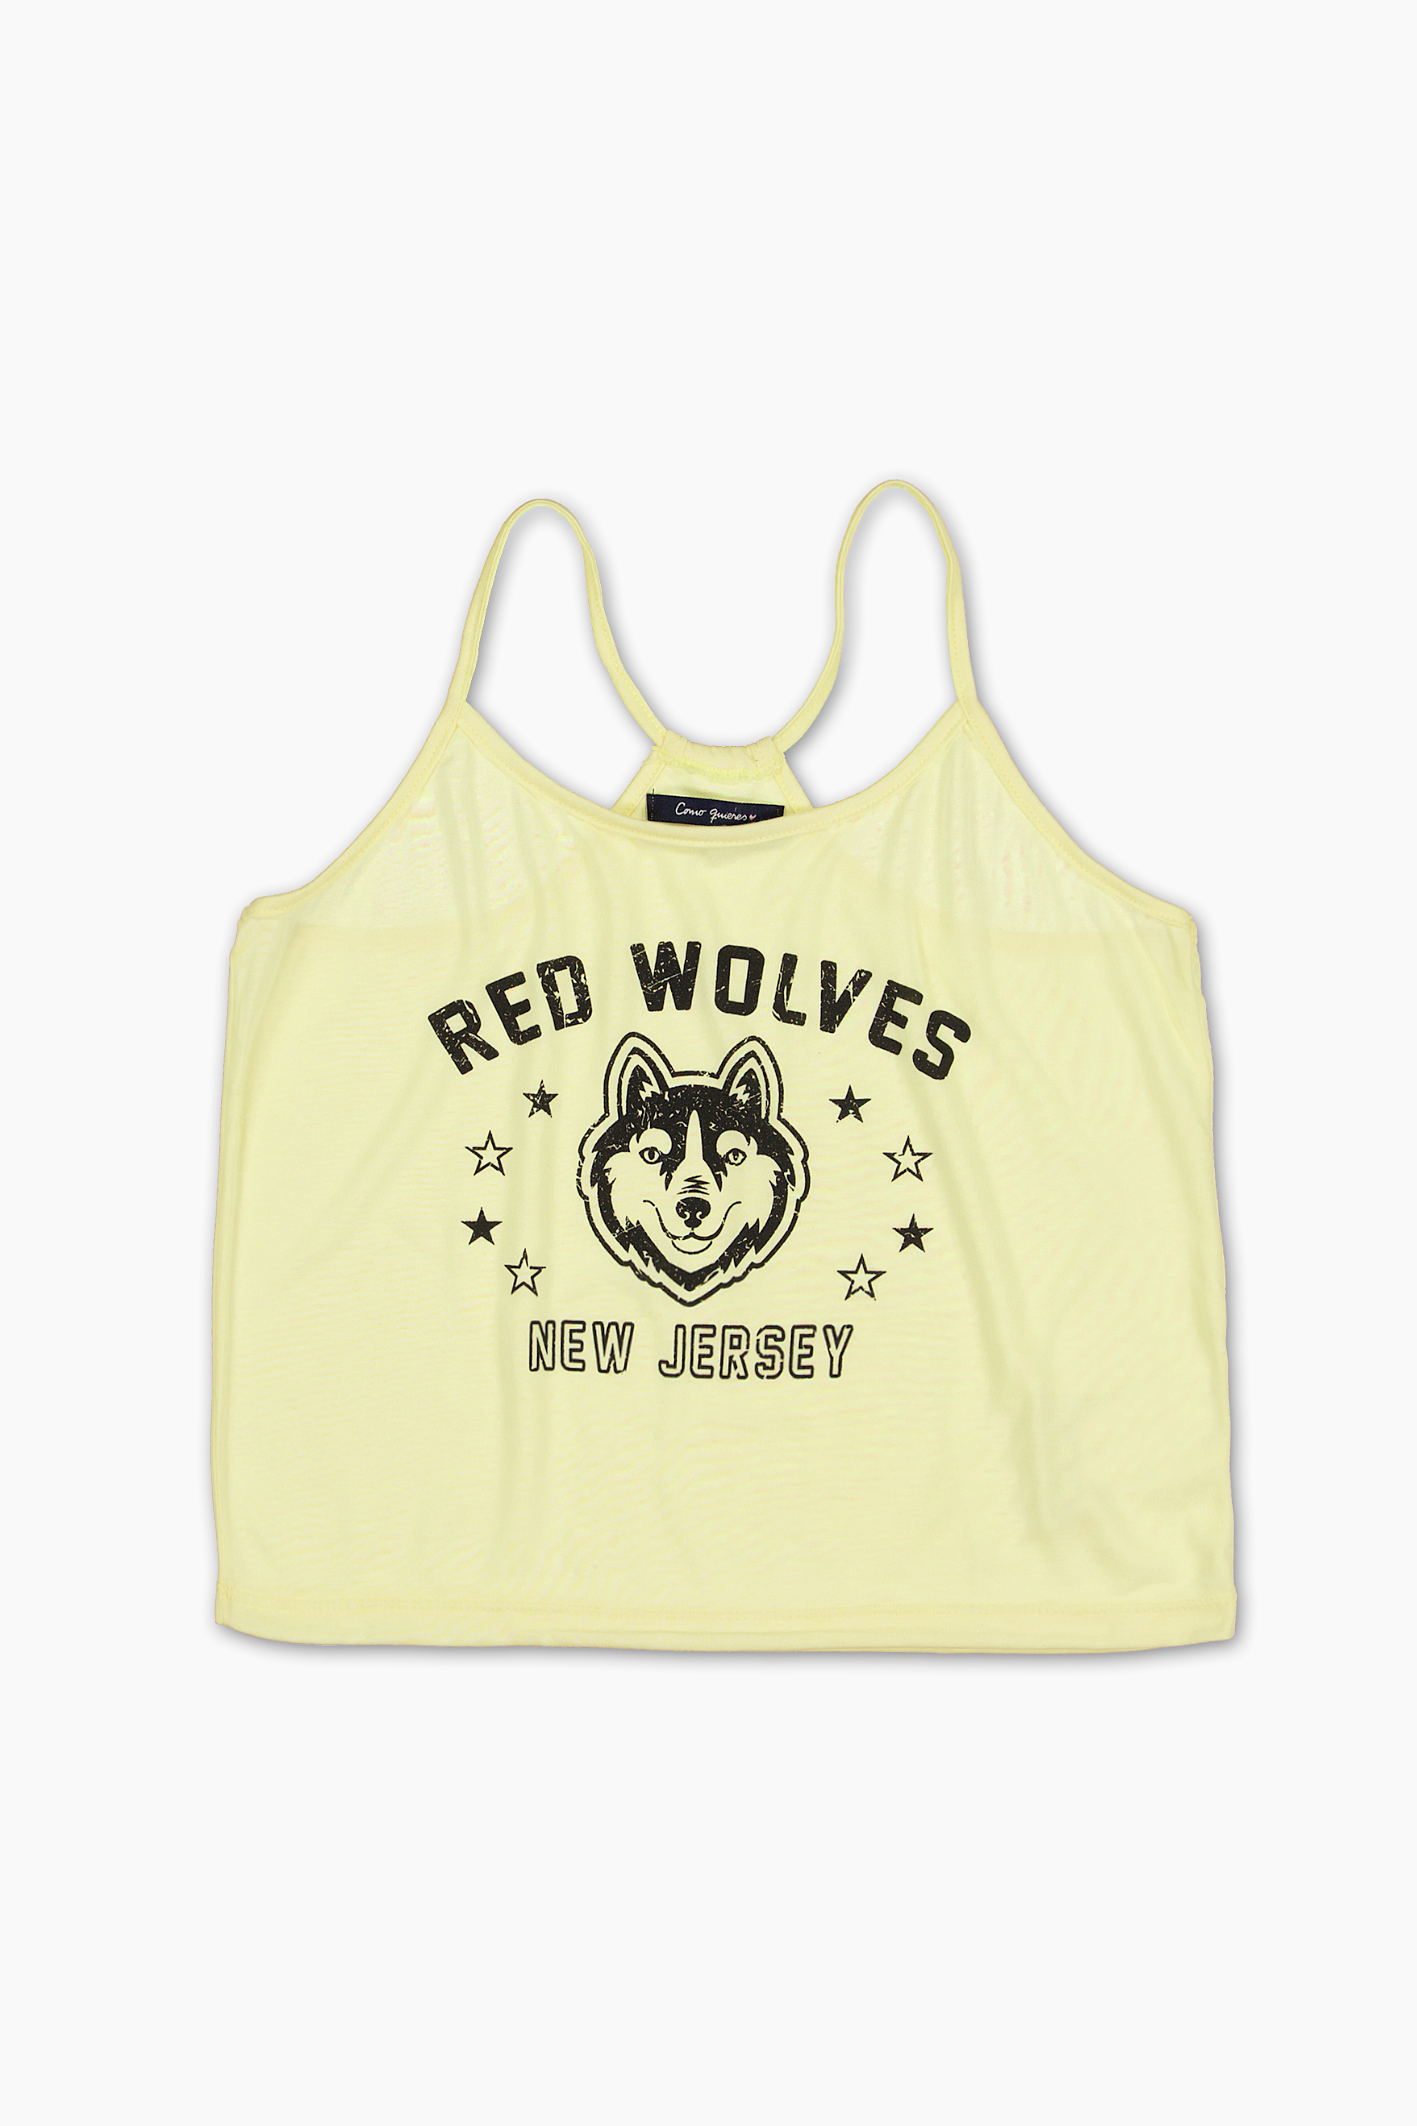 comoquieres_musculosa-wolf-36-44_32-28-2020__picture-12552